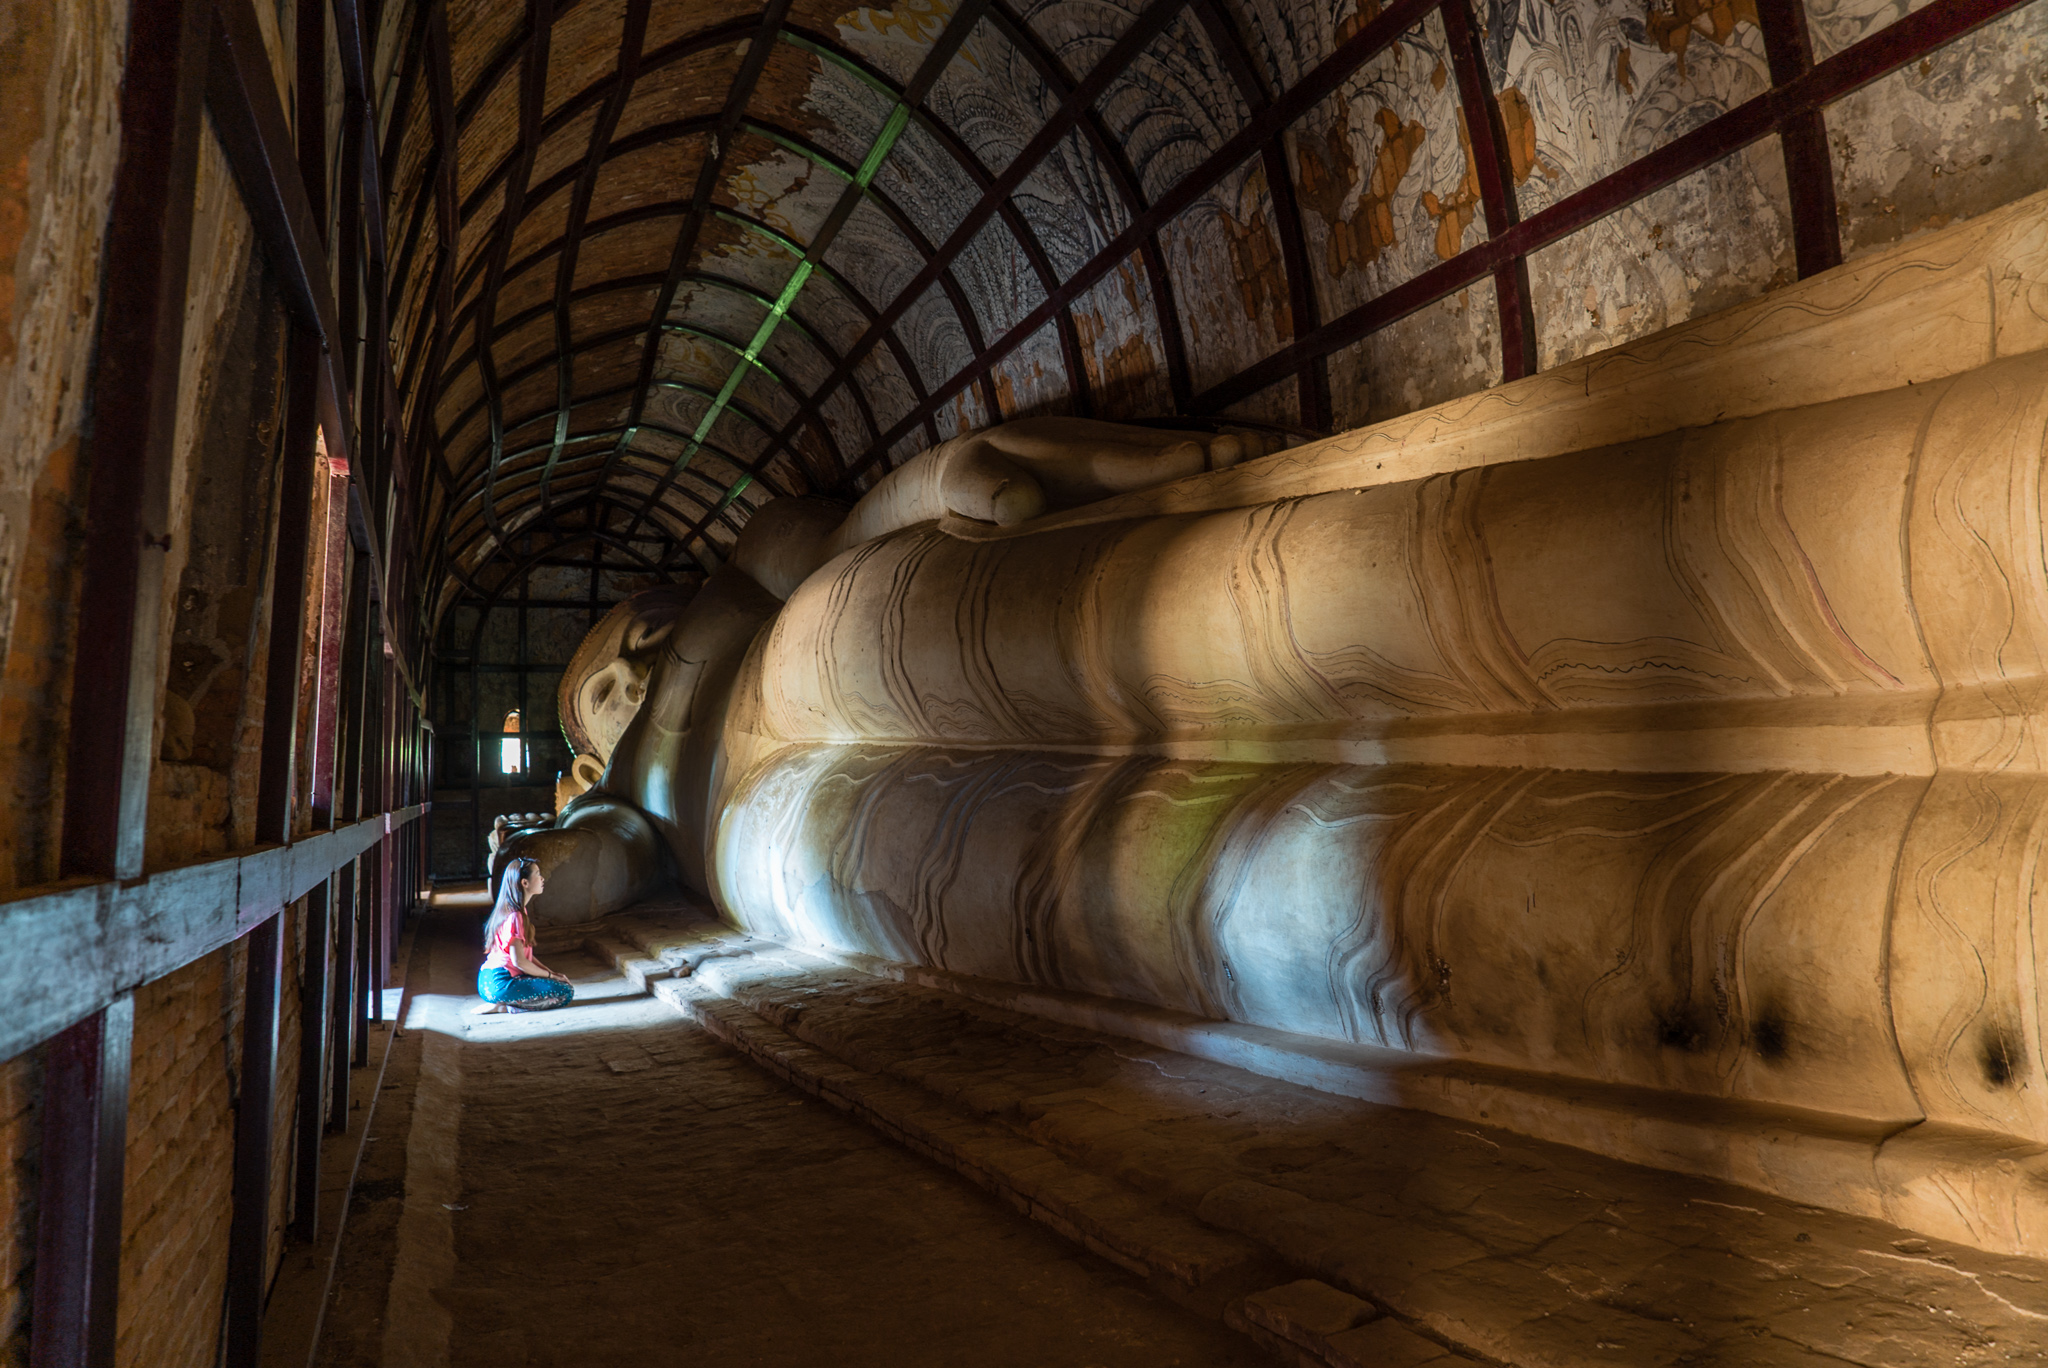 The second largest 18-metre long reclining Buddha sculpture in Bagan, a surprise find in the seemingly small brick structure around the Shwesandaw compound.